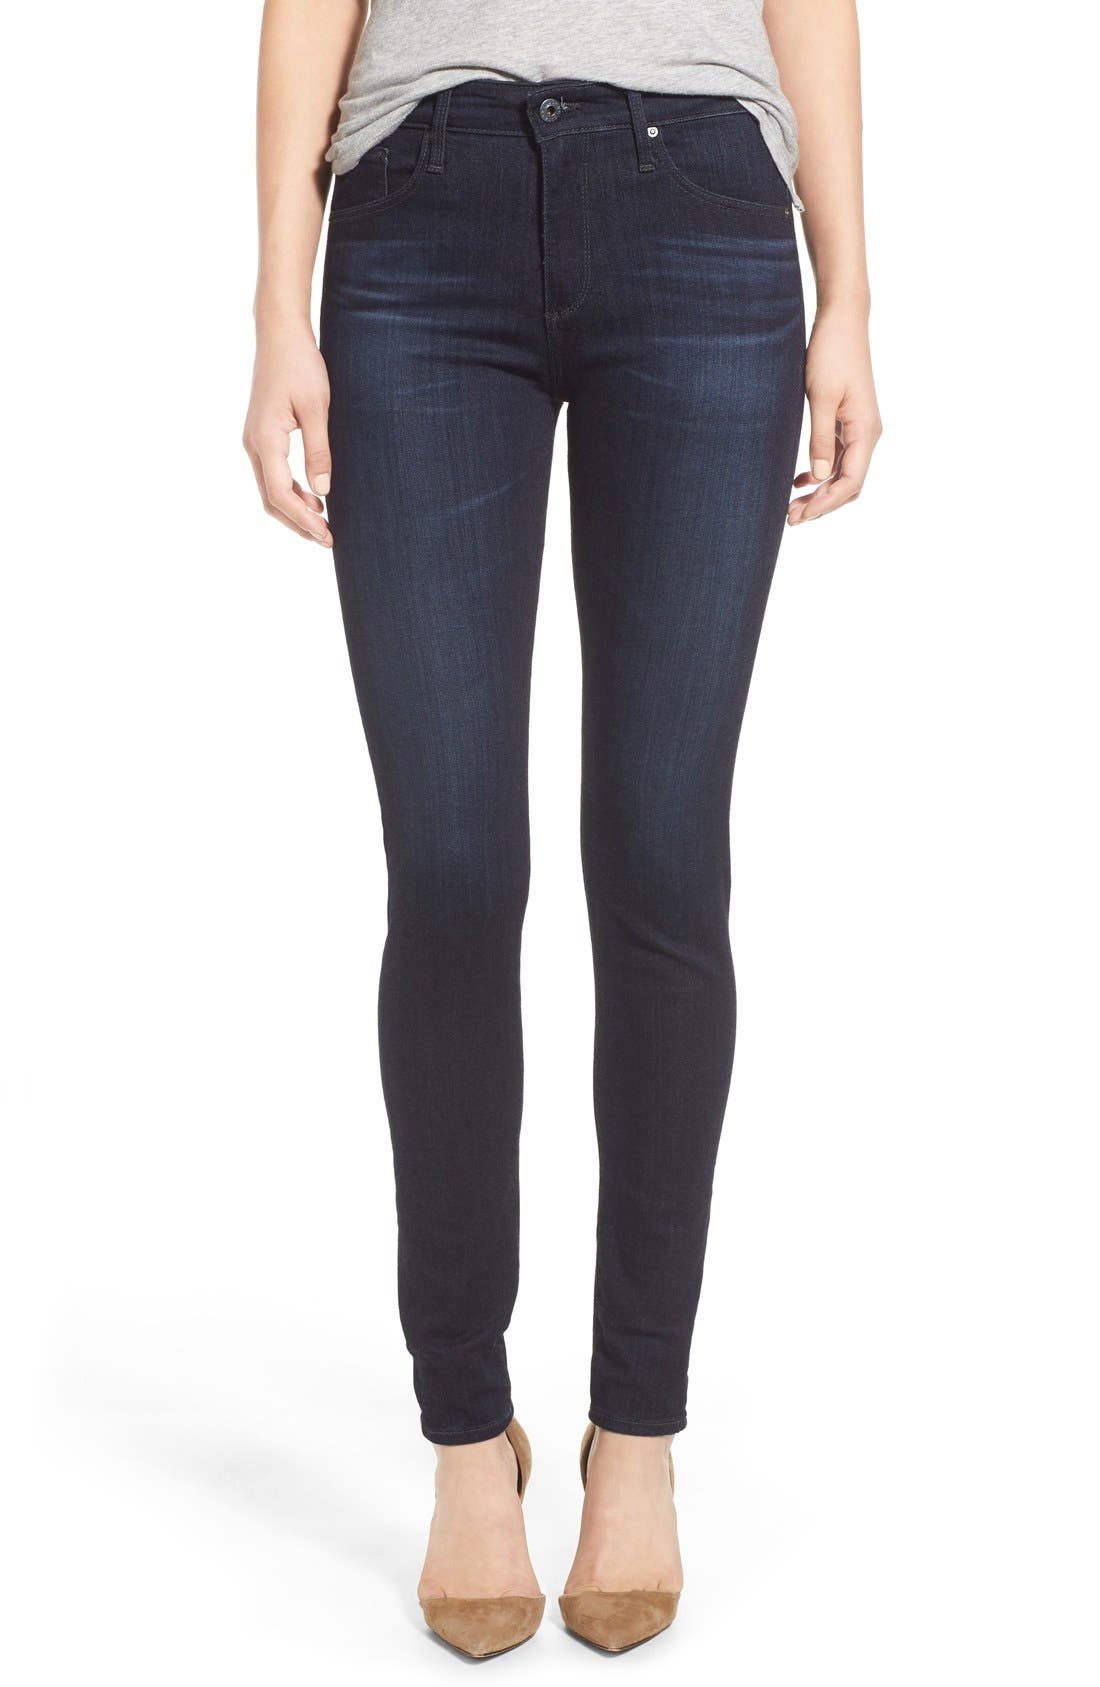 Our Skinny jean is thoughtfully designed to fit just right. It's lean and sexy, with a little wiggle room at the hem, with super stretch capabilities and the real feel of denim.